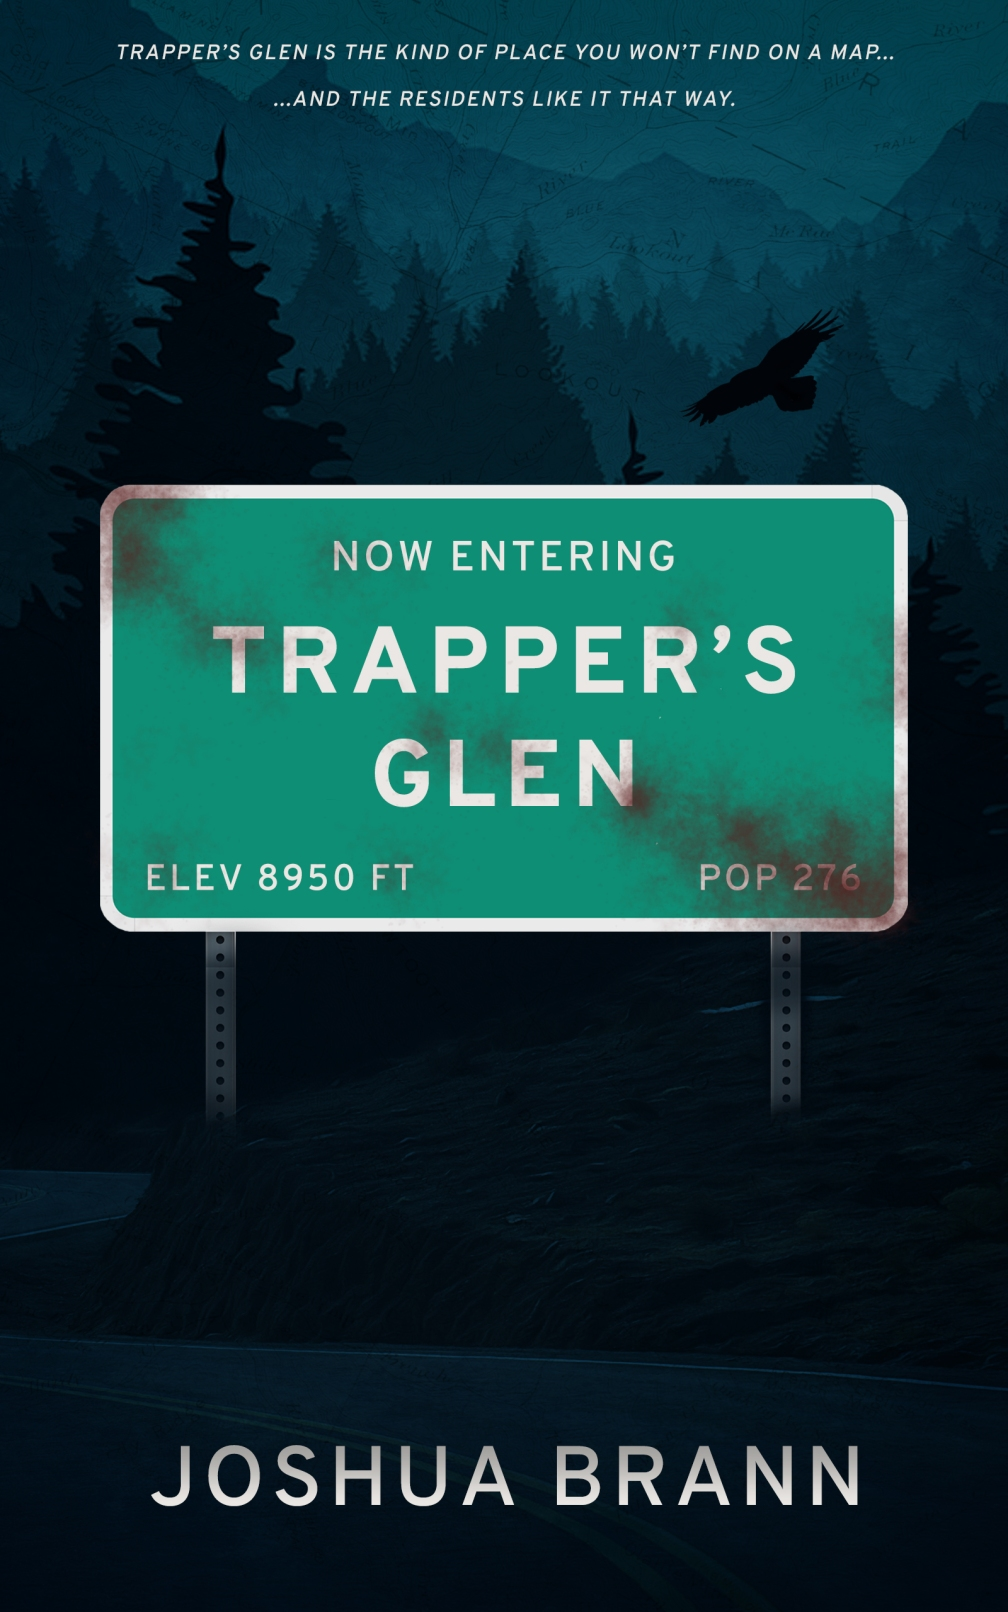 Trappers_Glen_Simple